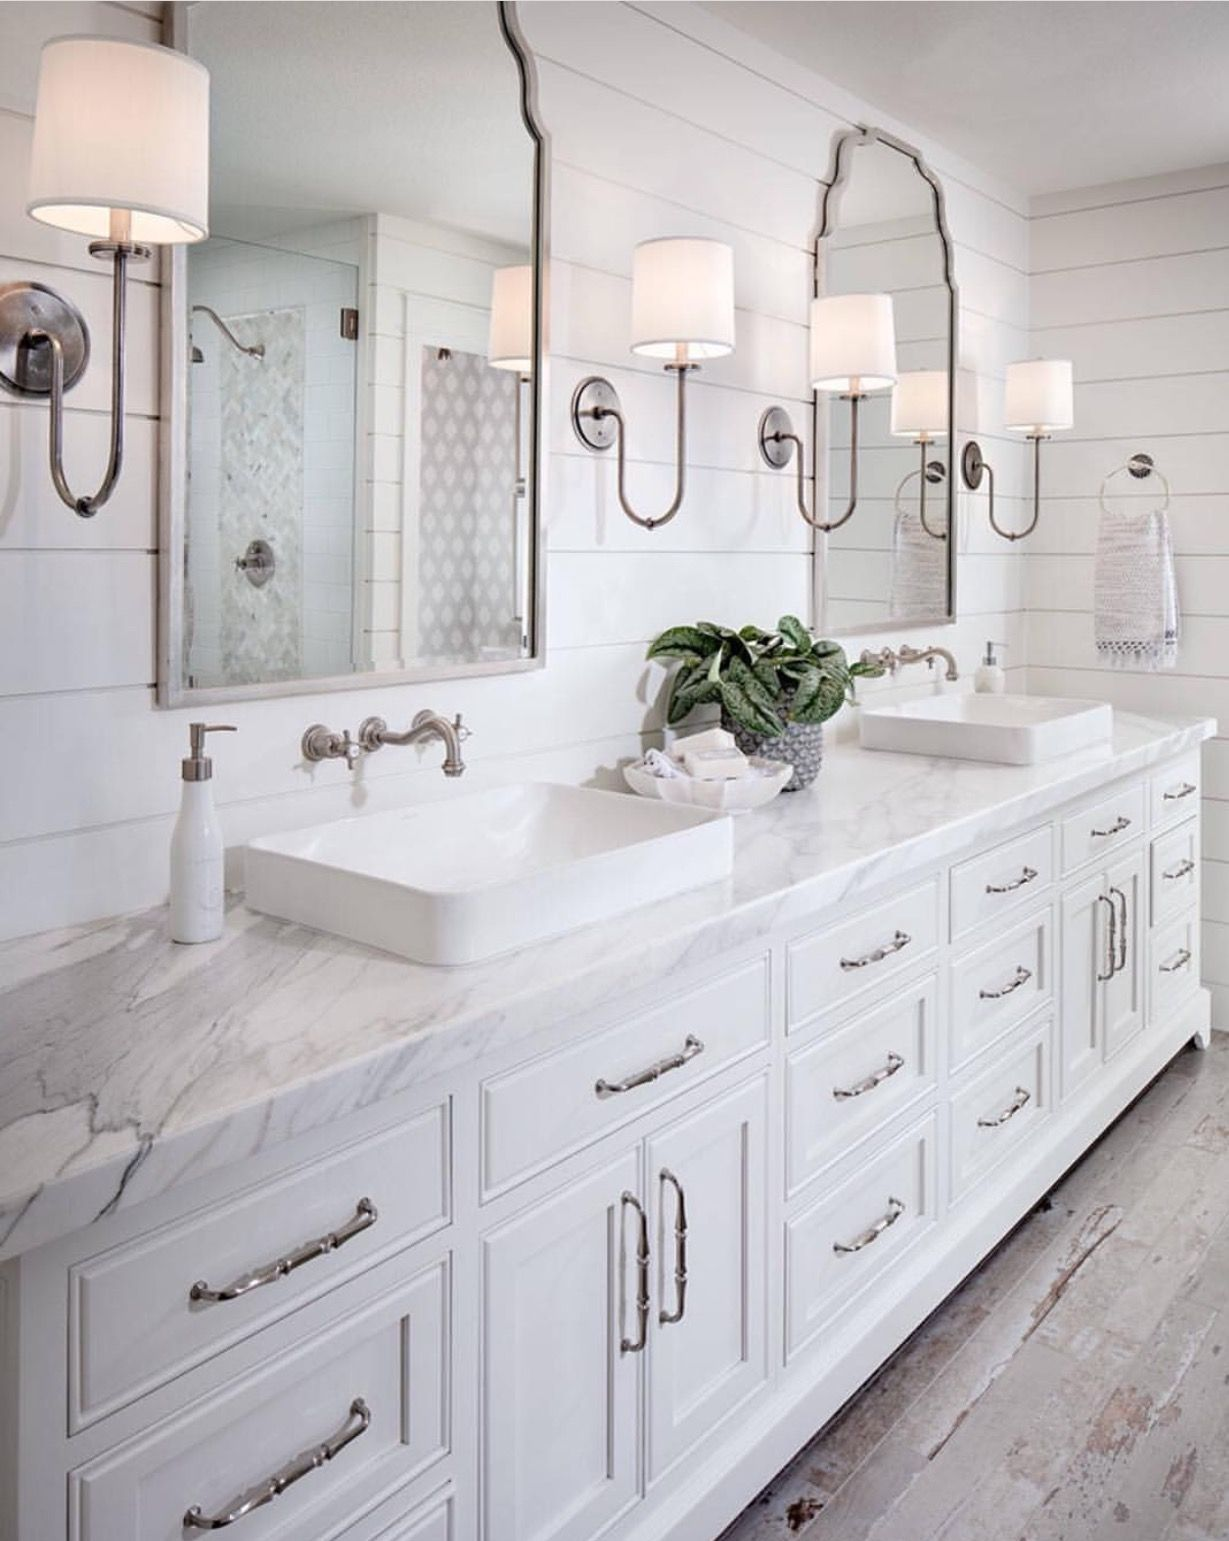 Upstairs hall bath mirrors | |home| | Pinterest | Hall, Bath and ...